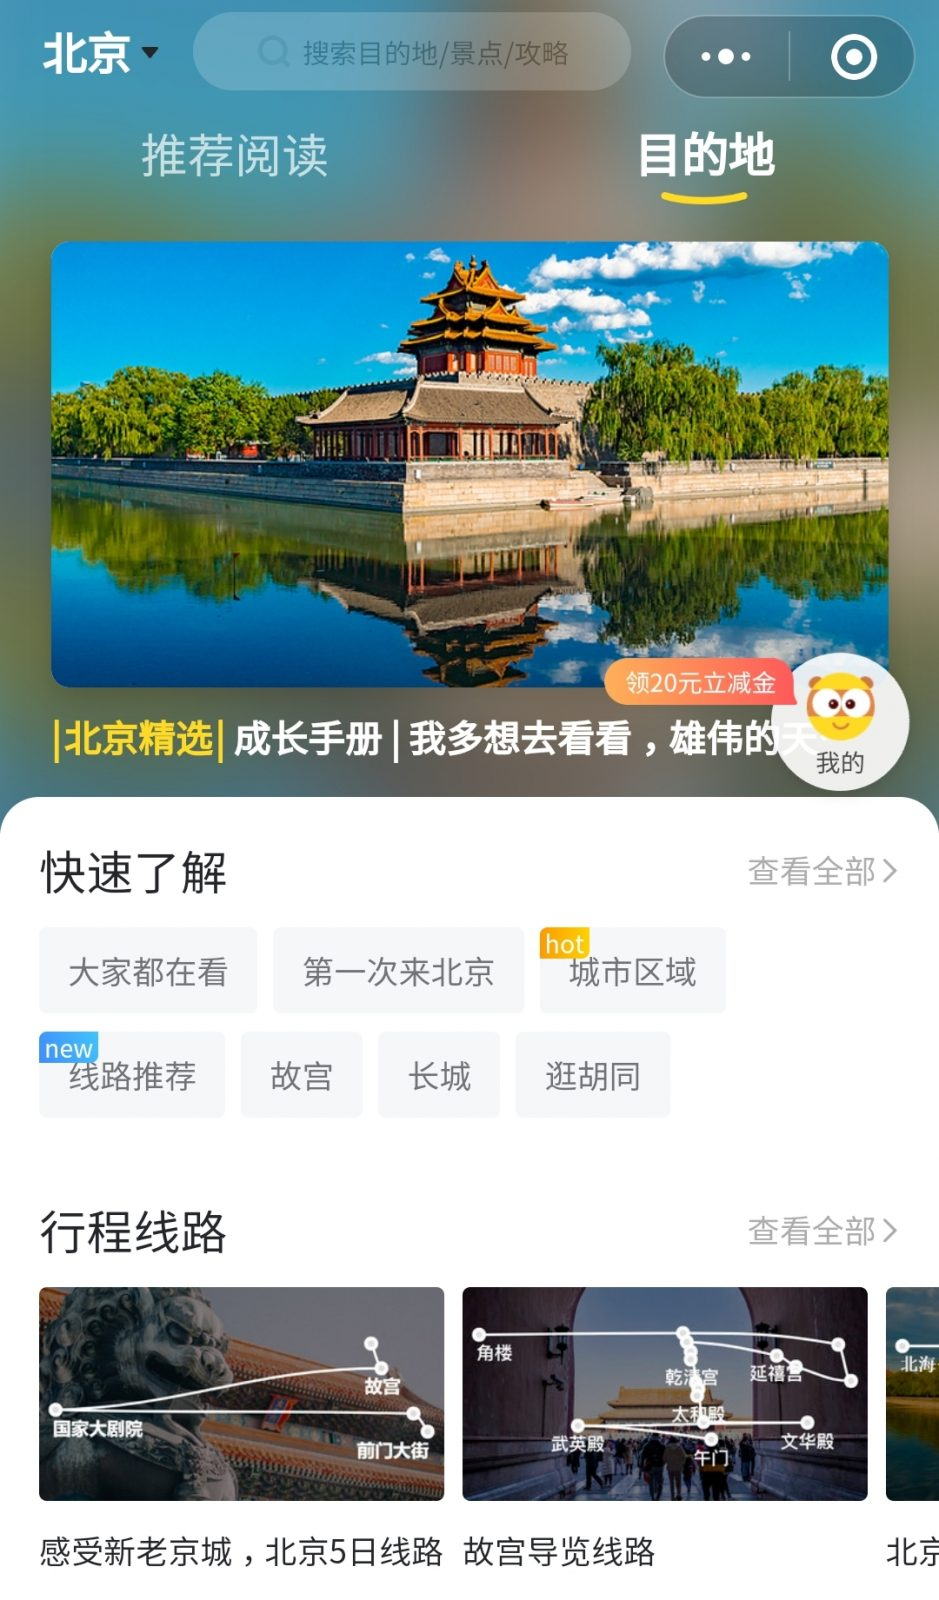 Mafengwo android ios wechat 马蜂窝 按掉 苹果 微信